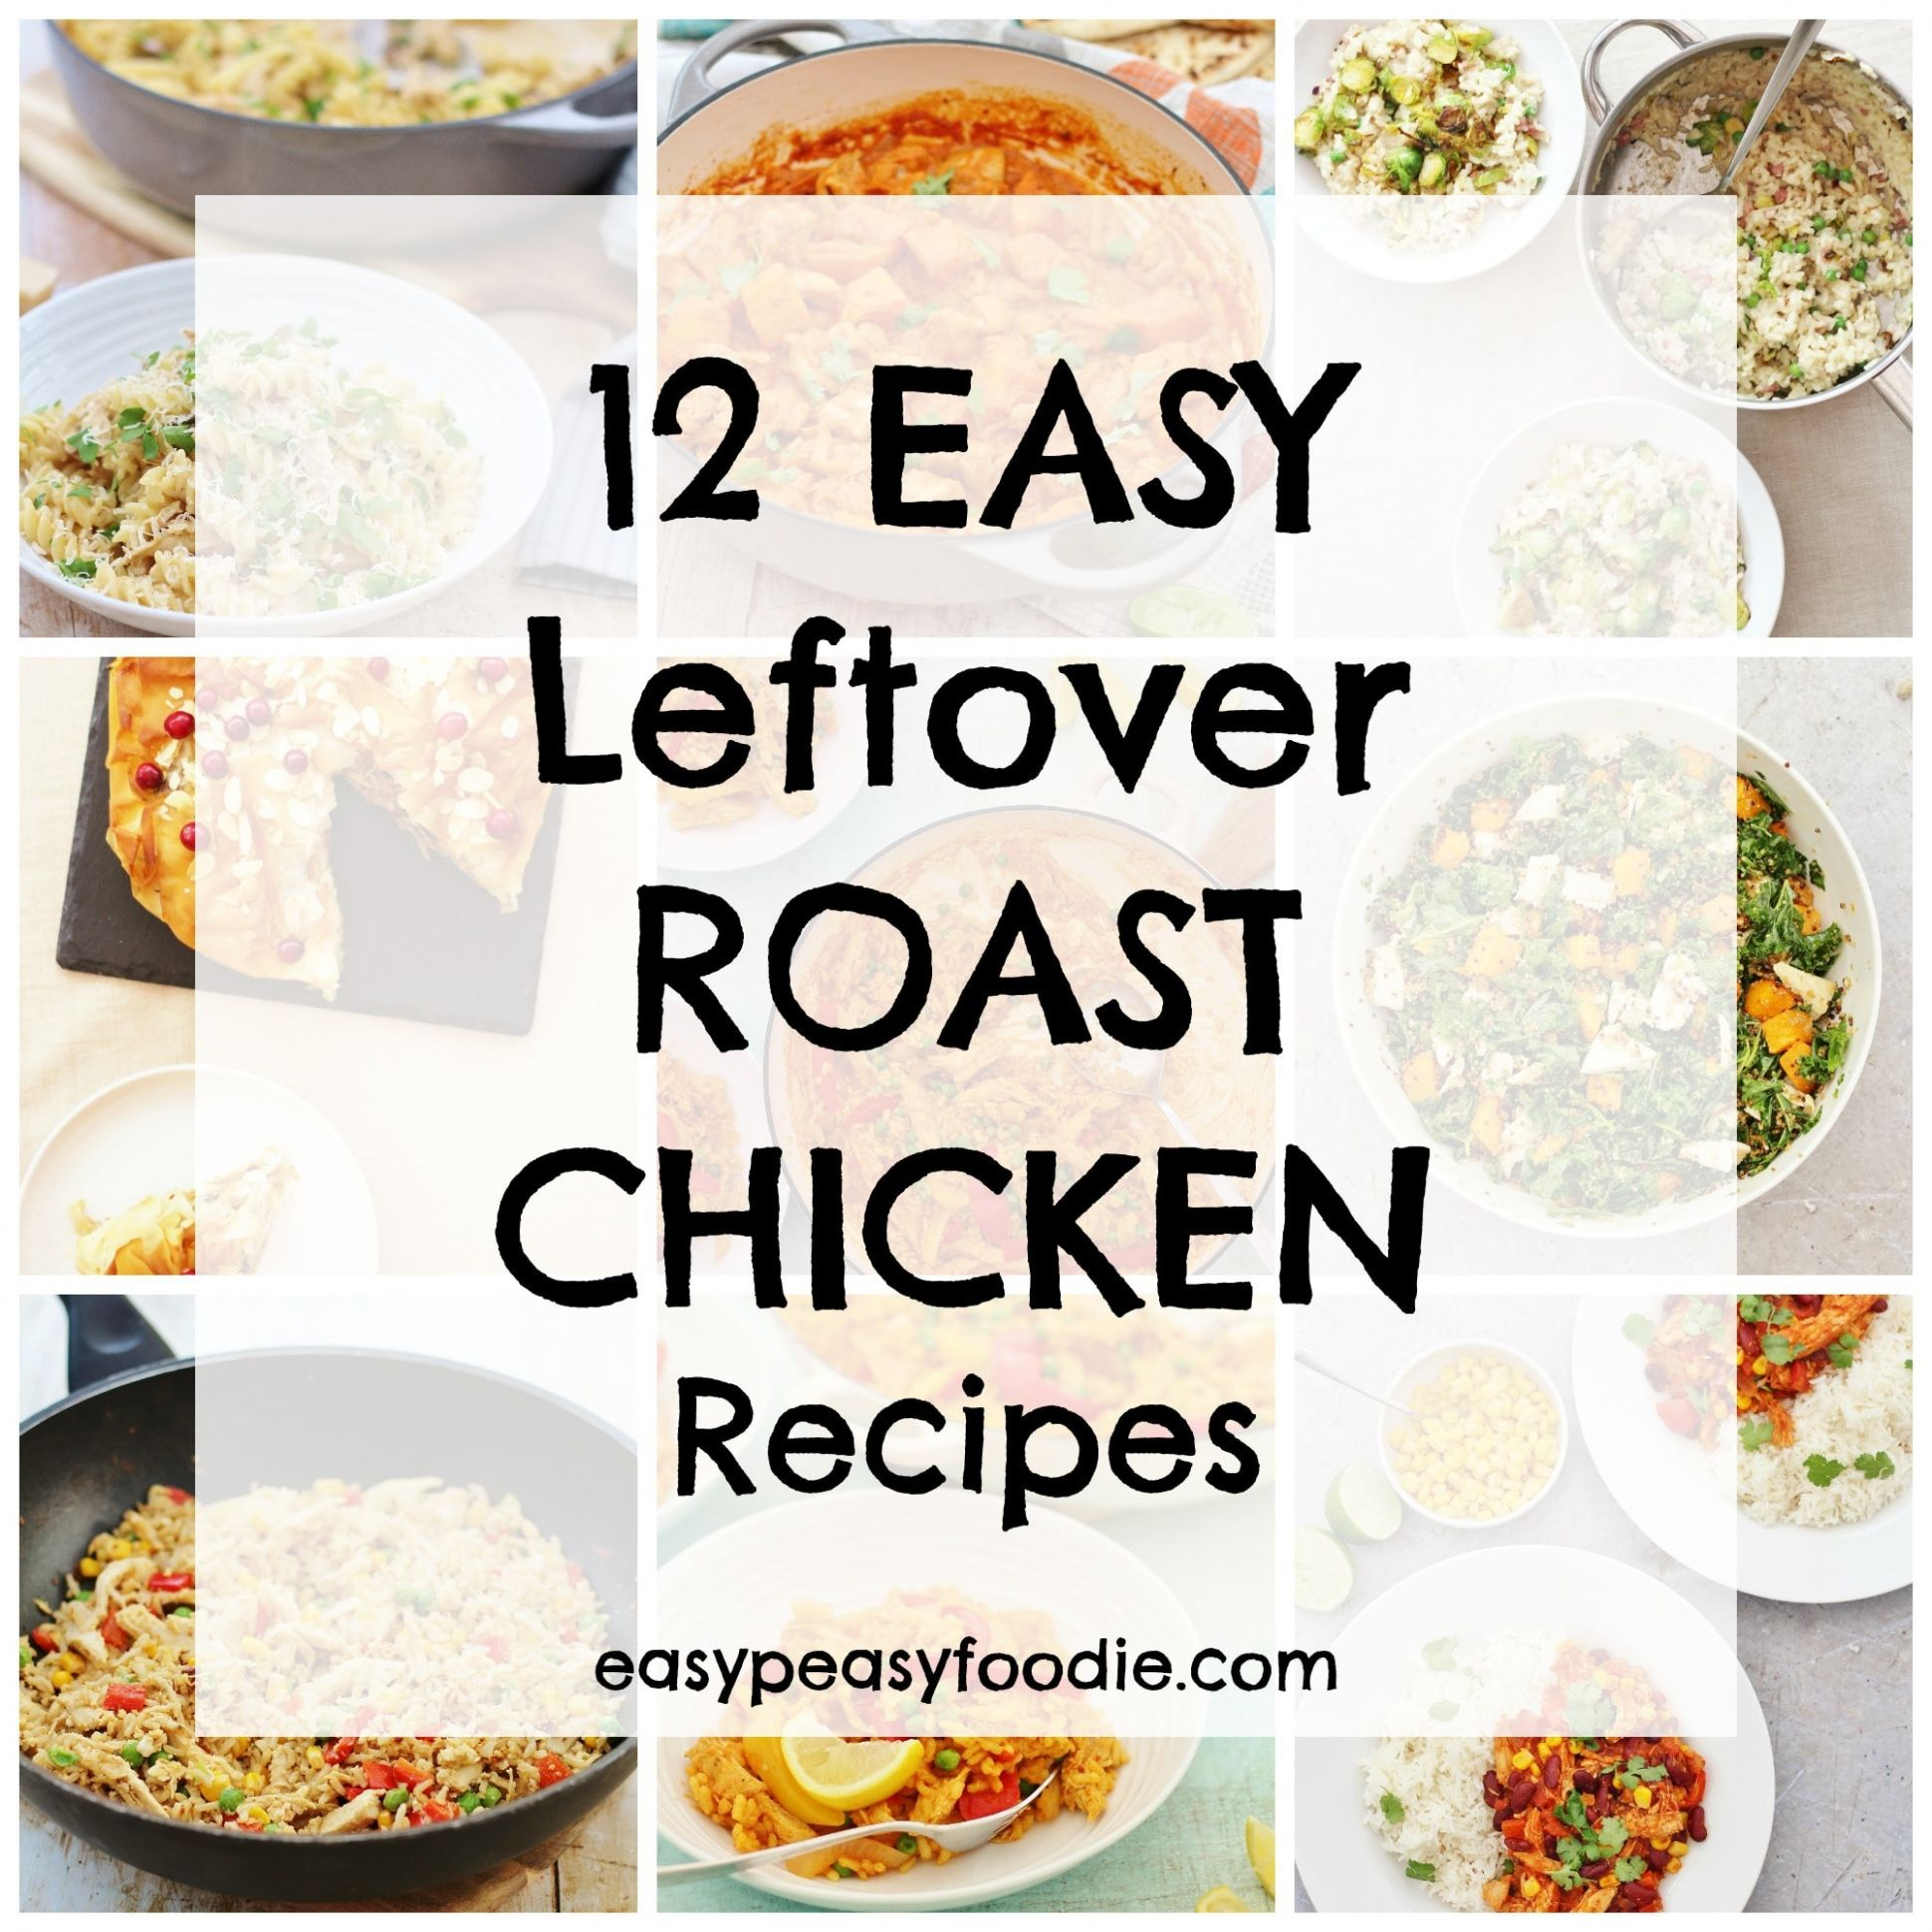 11 Easy Leftover Roast Chicken Recipes - Easy Peasy Foodie